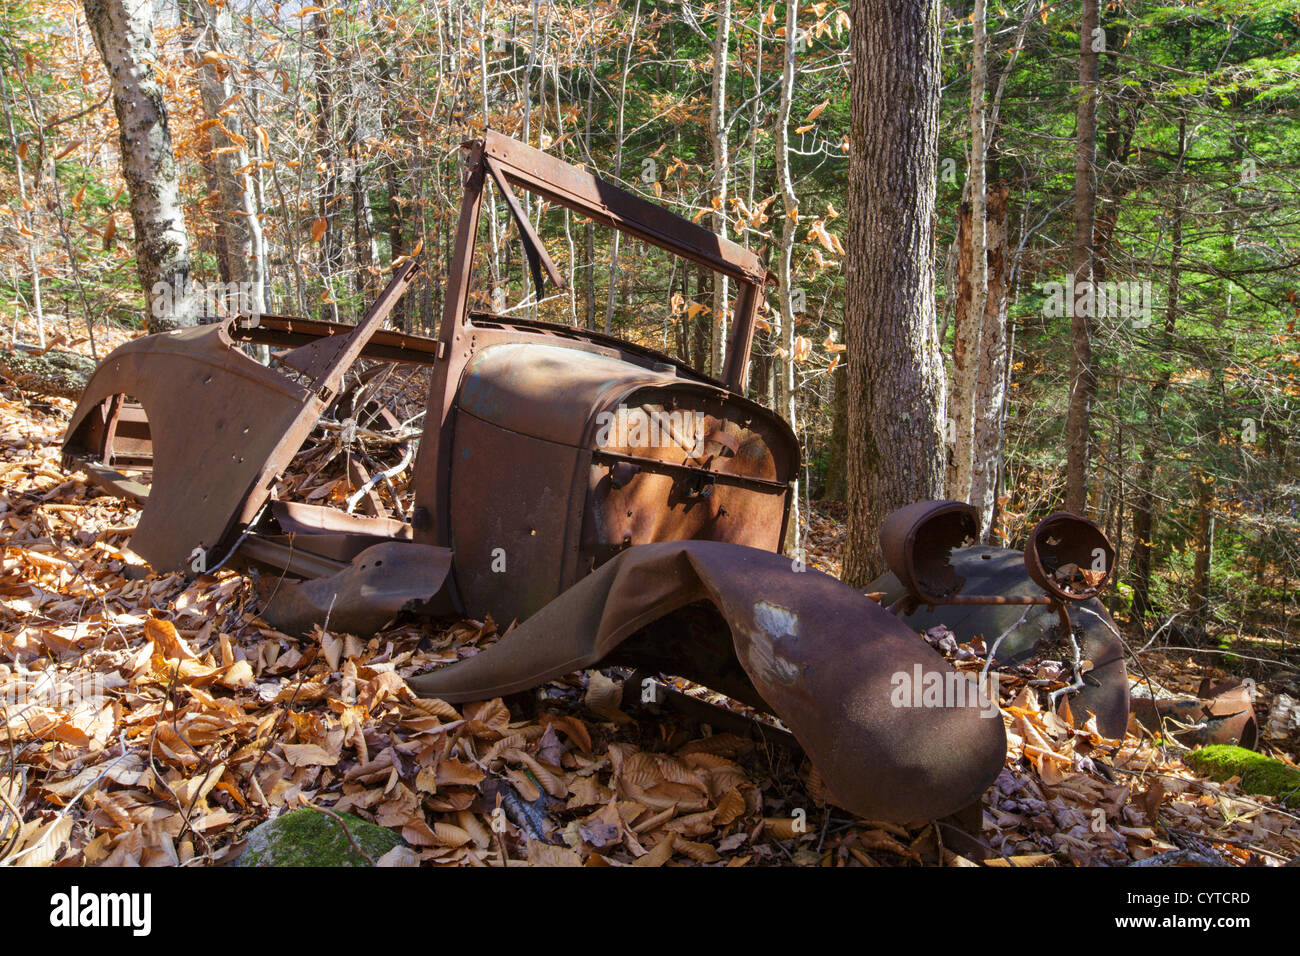 Rusted car in the Eastman Brook drainage of Thornton, New Hampshire USA - Stock Image